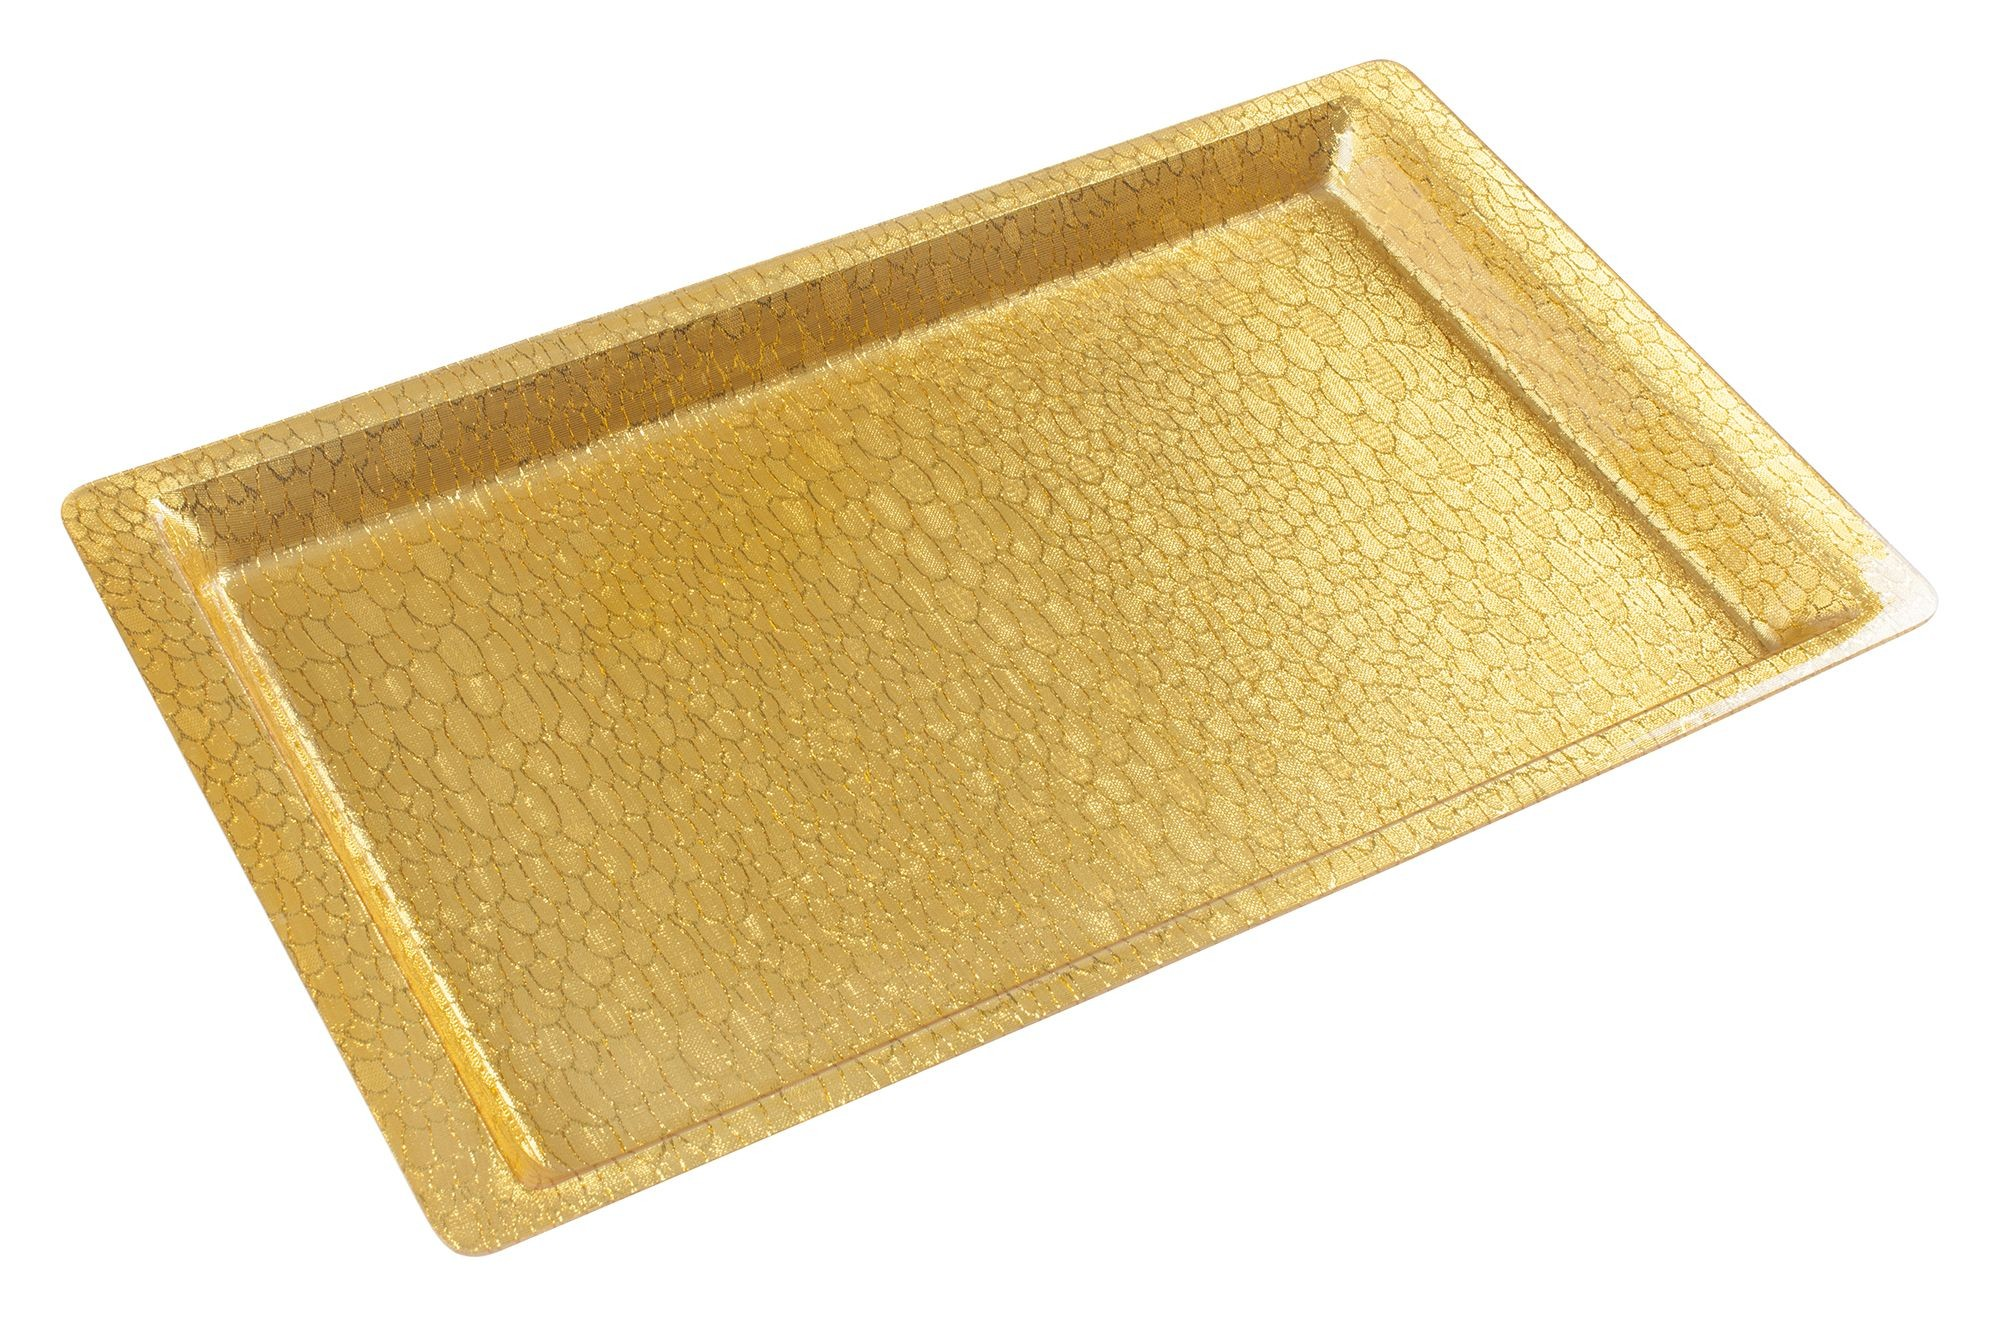 Full Size Gold Textured Acrylic Display Tray - 20-3/4 X 12-3/4